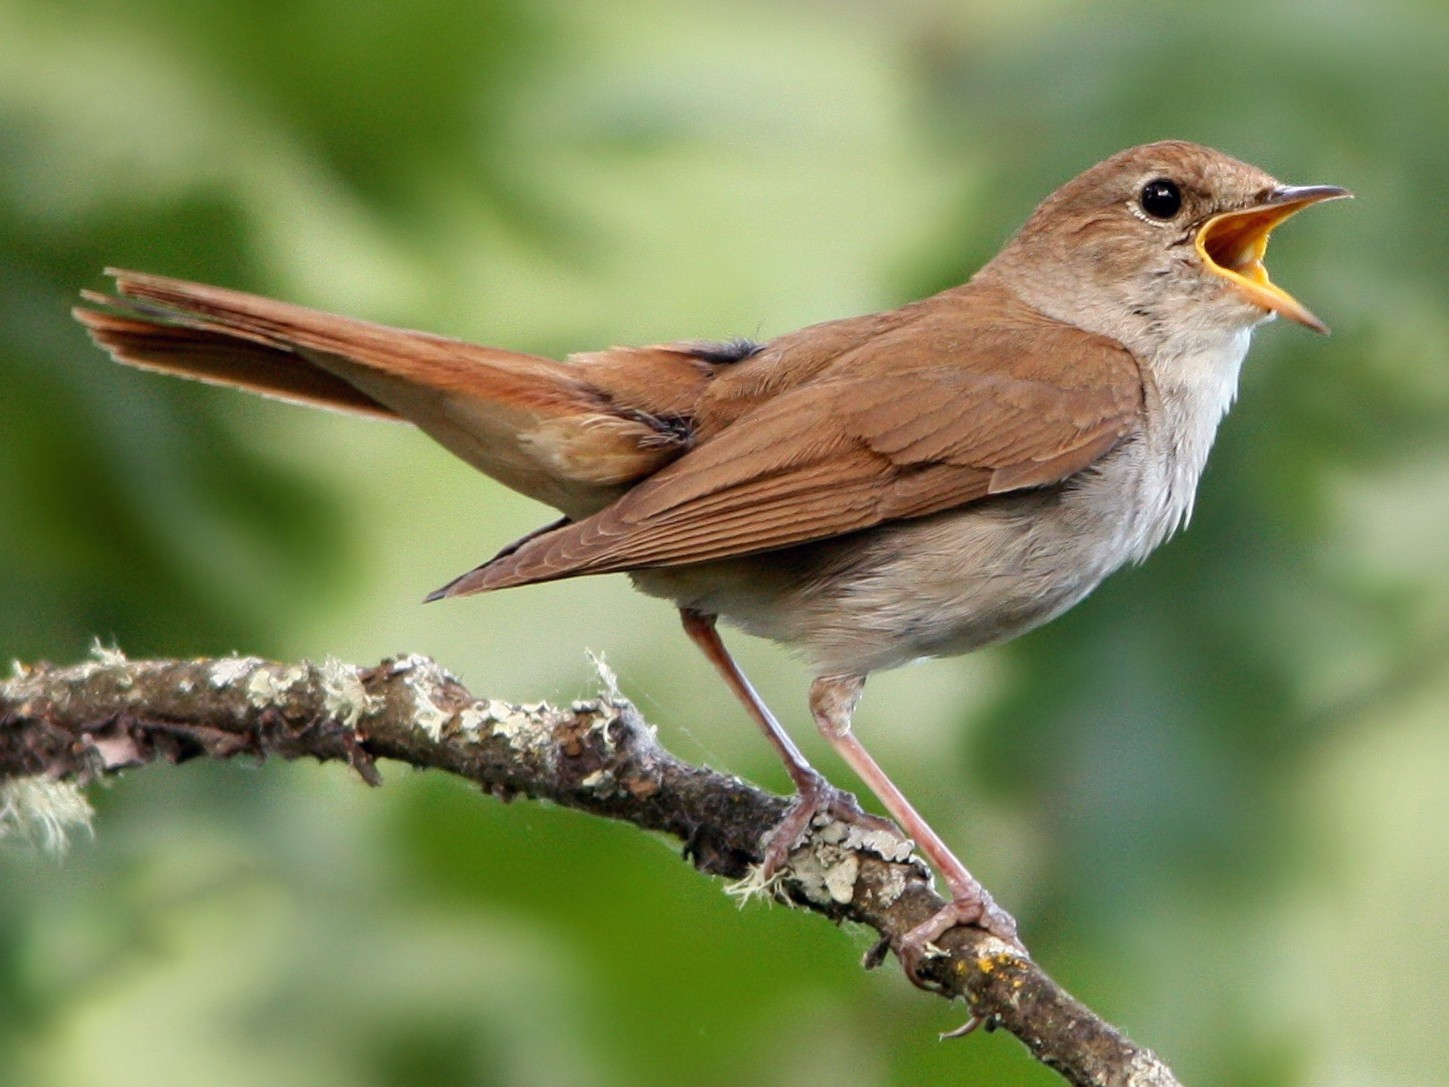 Common Nightingale - Tânia Araújo